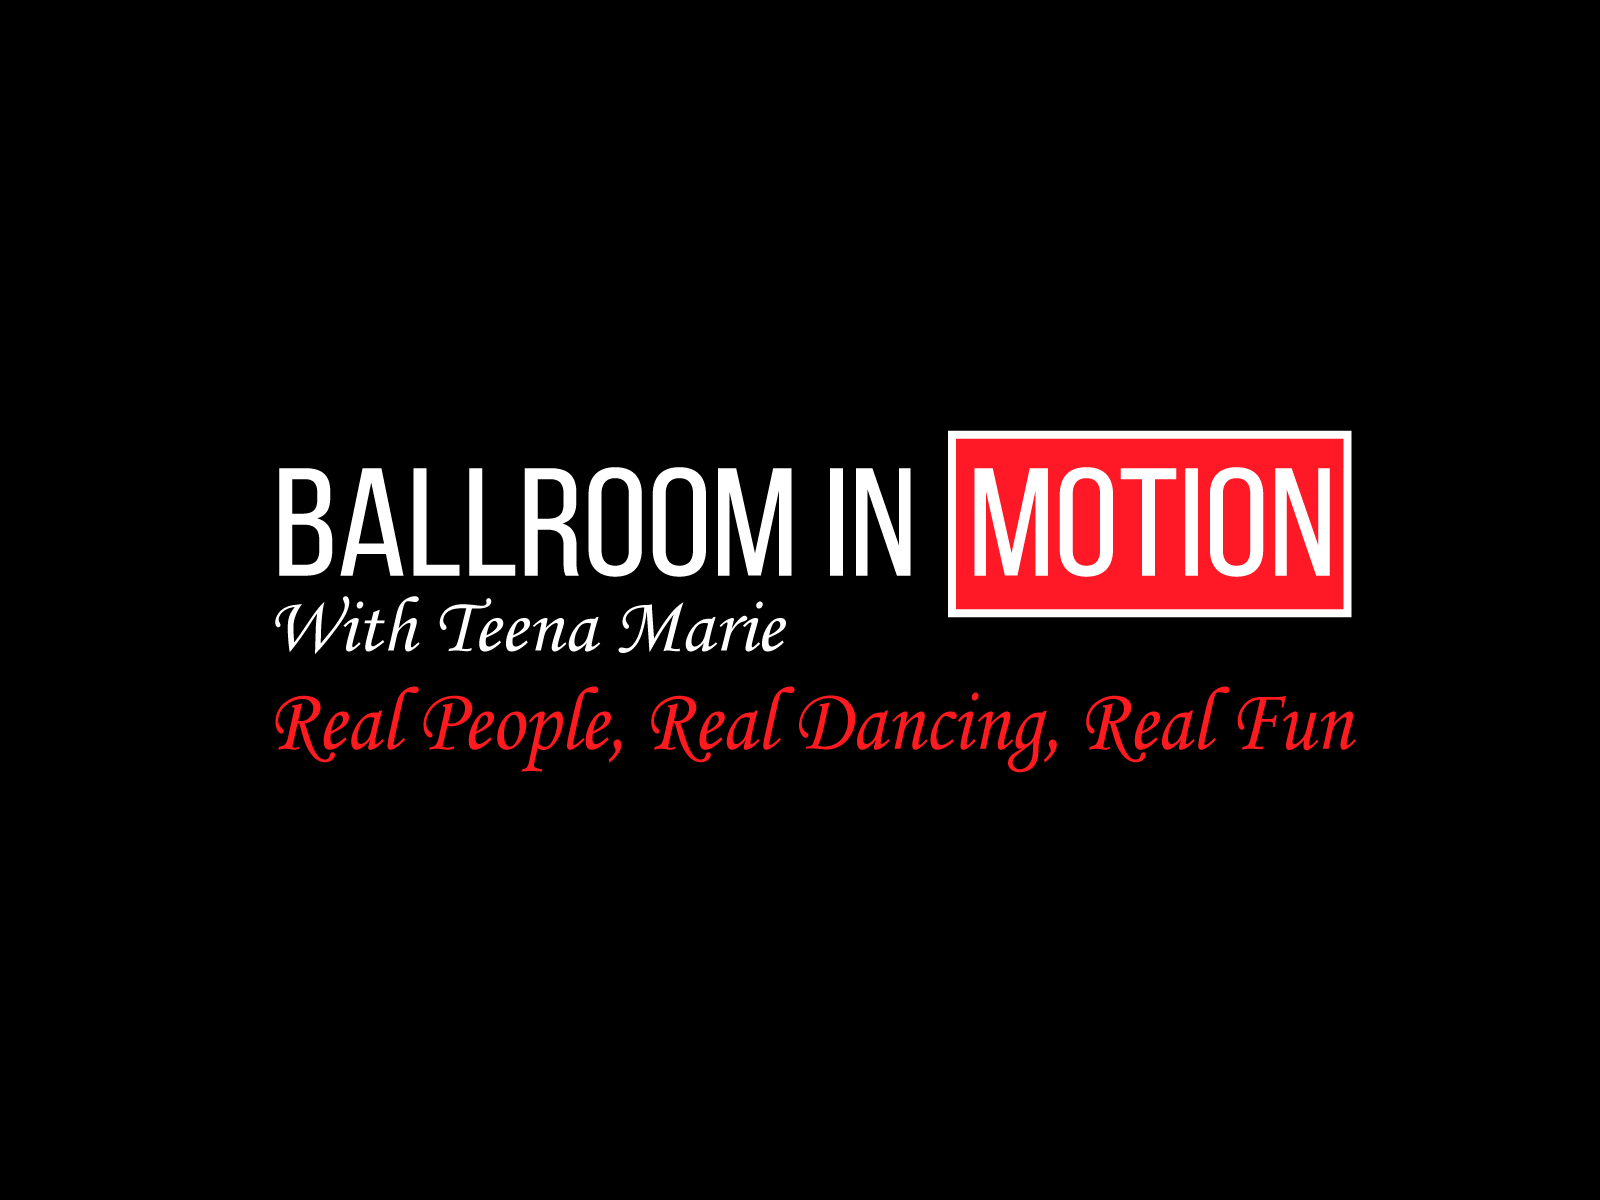 Ballroom in Motion